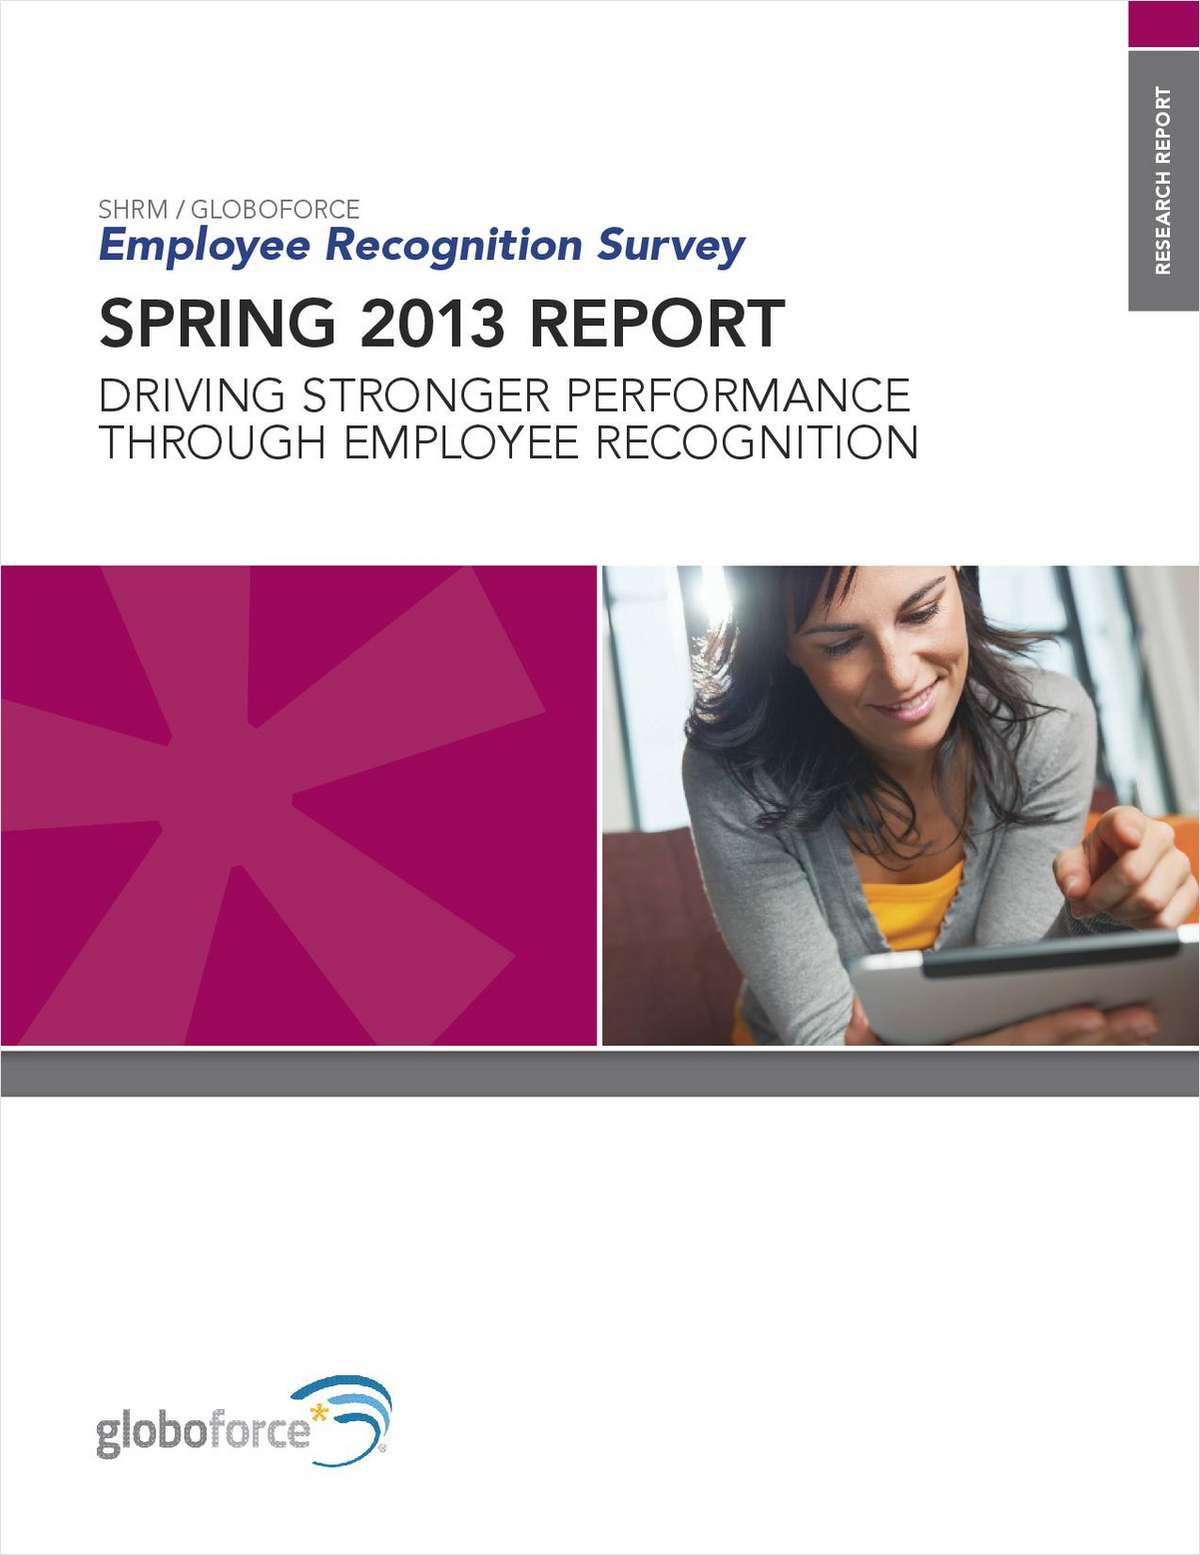 SHRM/Globoforce Report: Driving Stronger Performance through Employee Recognition